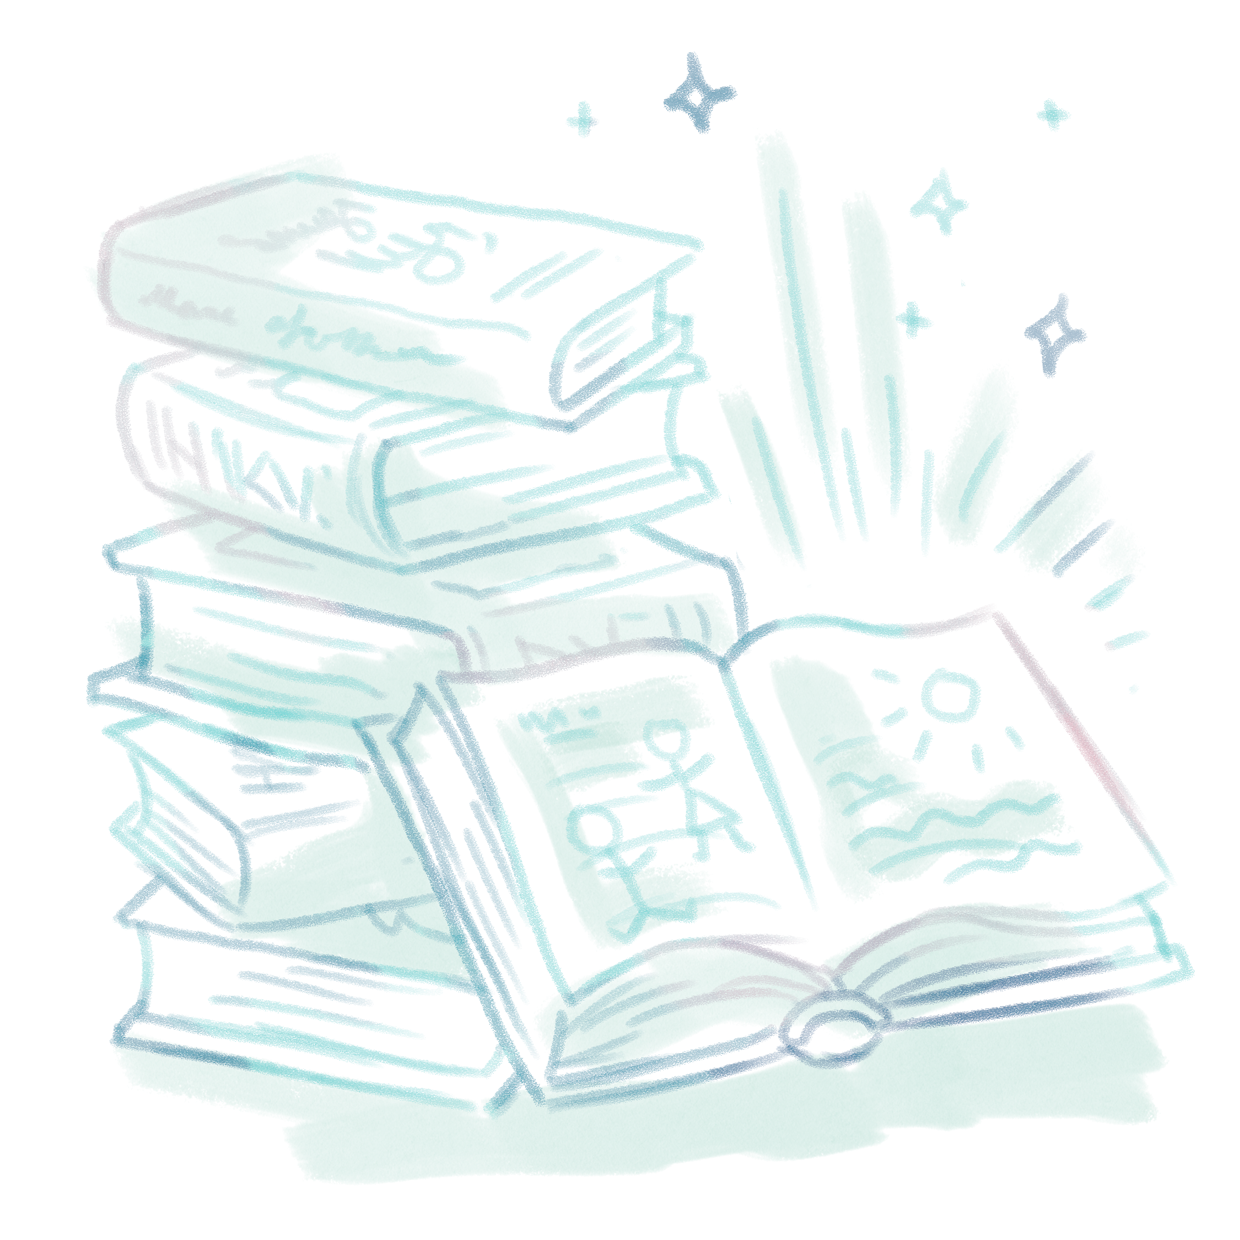 snugglewuggle_illustrations_store.png